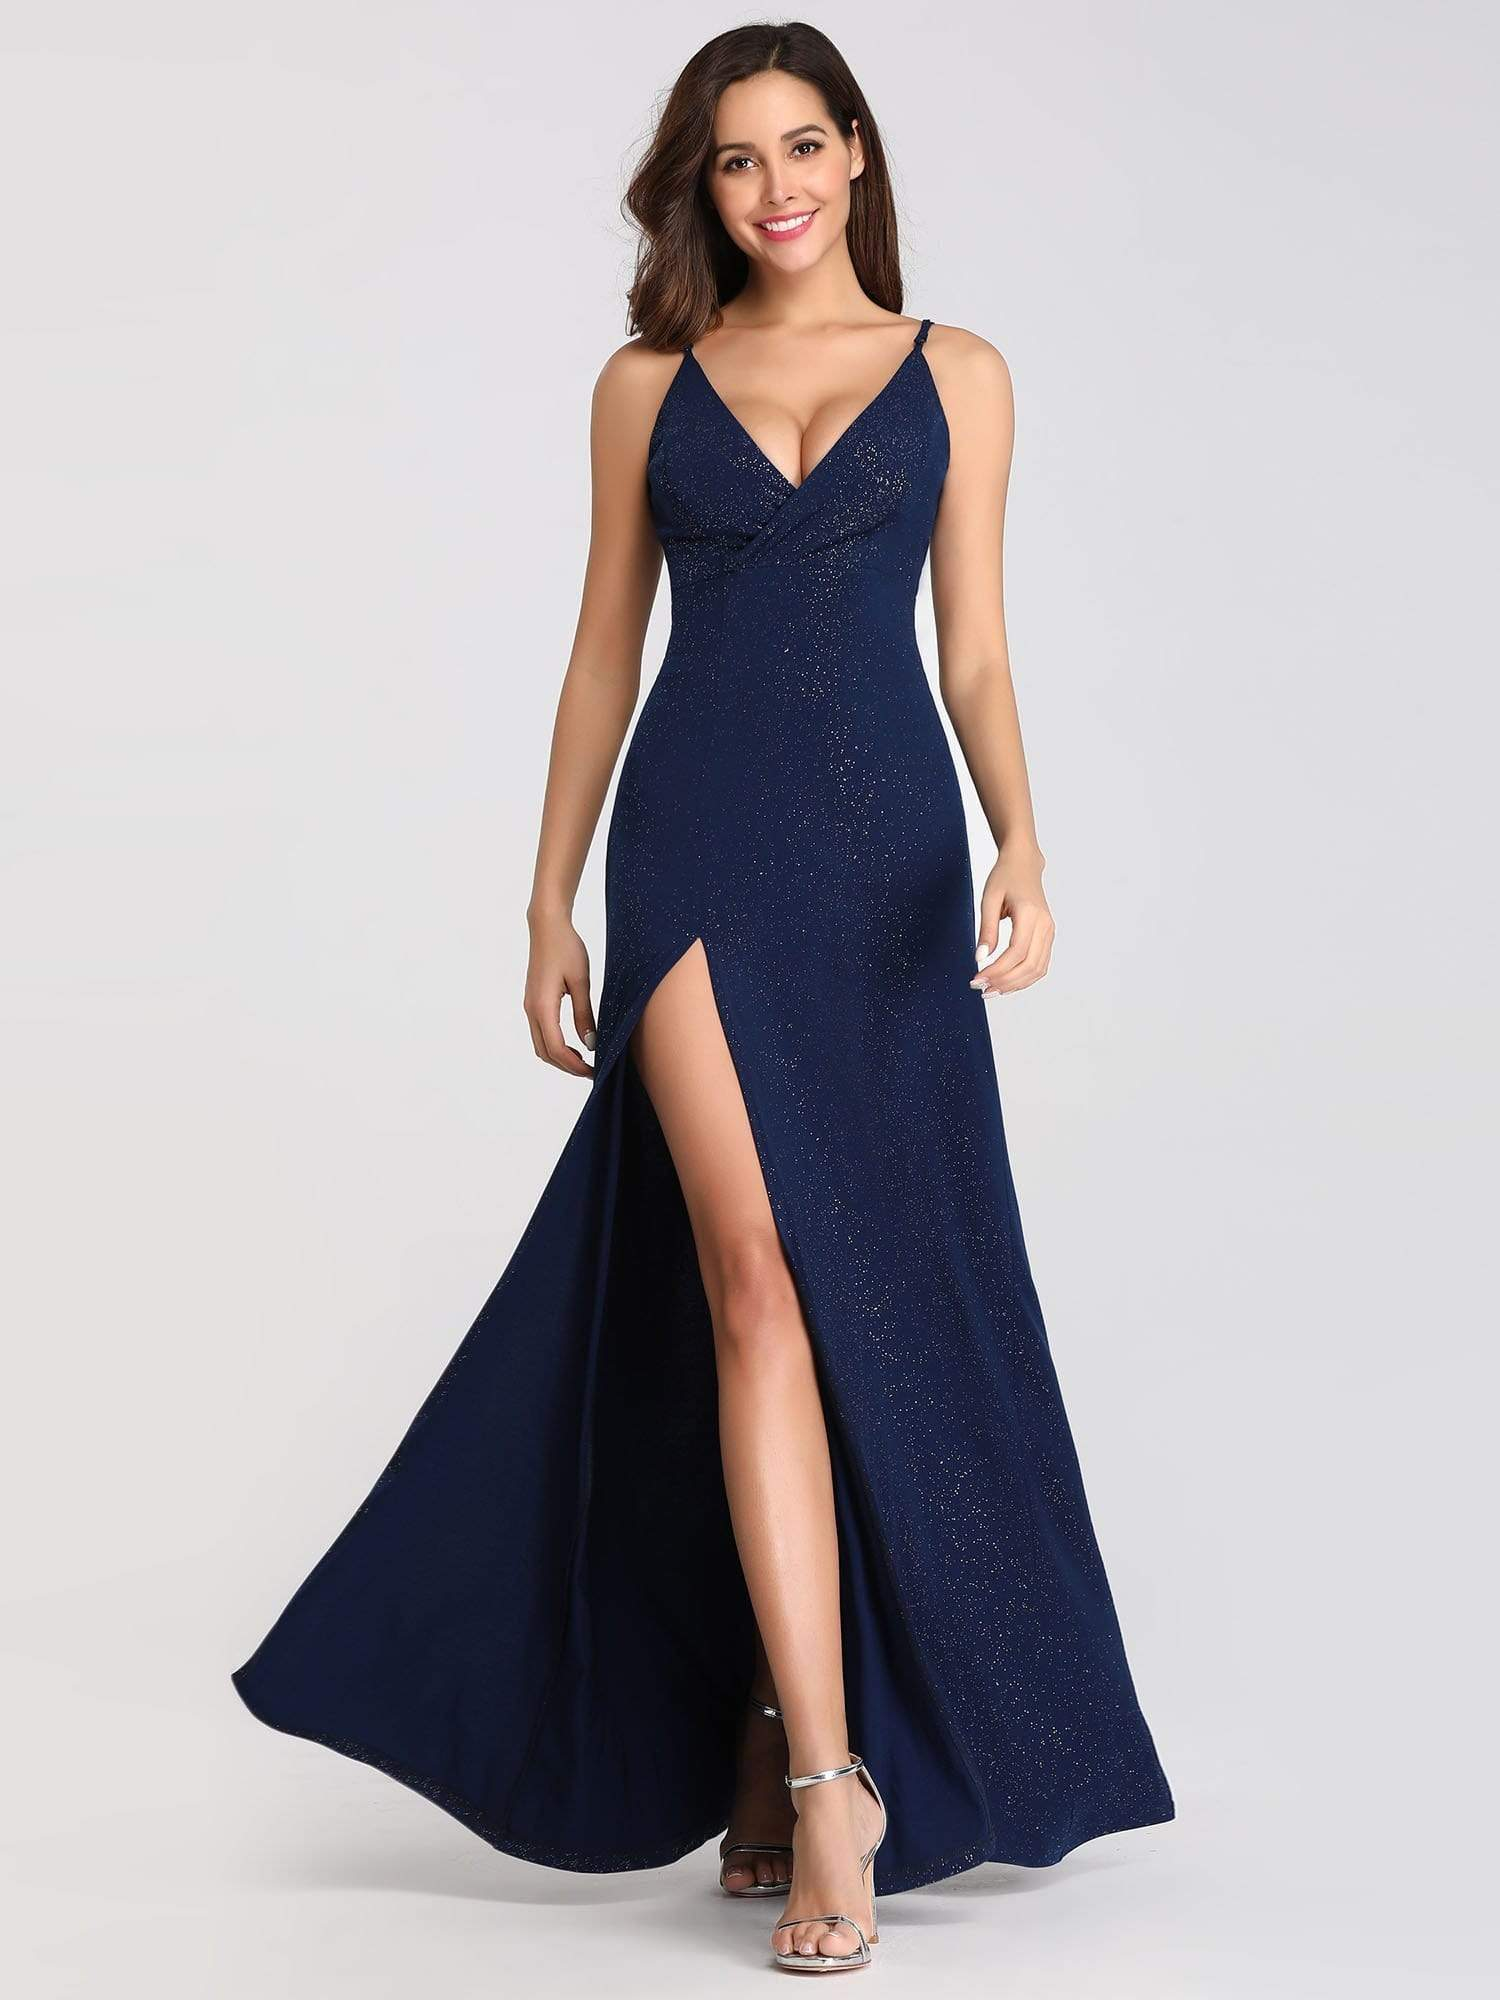 Shimmery Long V Neck Prom Dress With Slit Ever Pretty Us